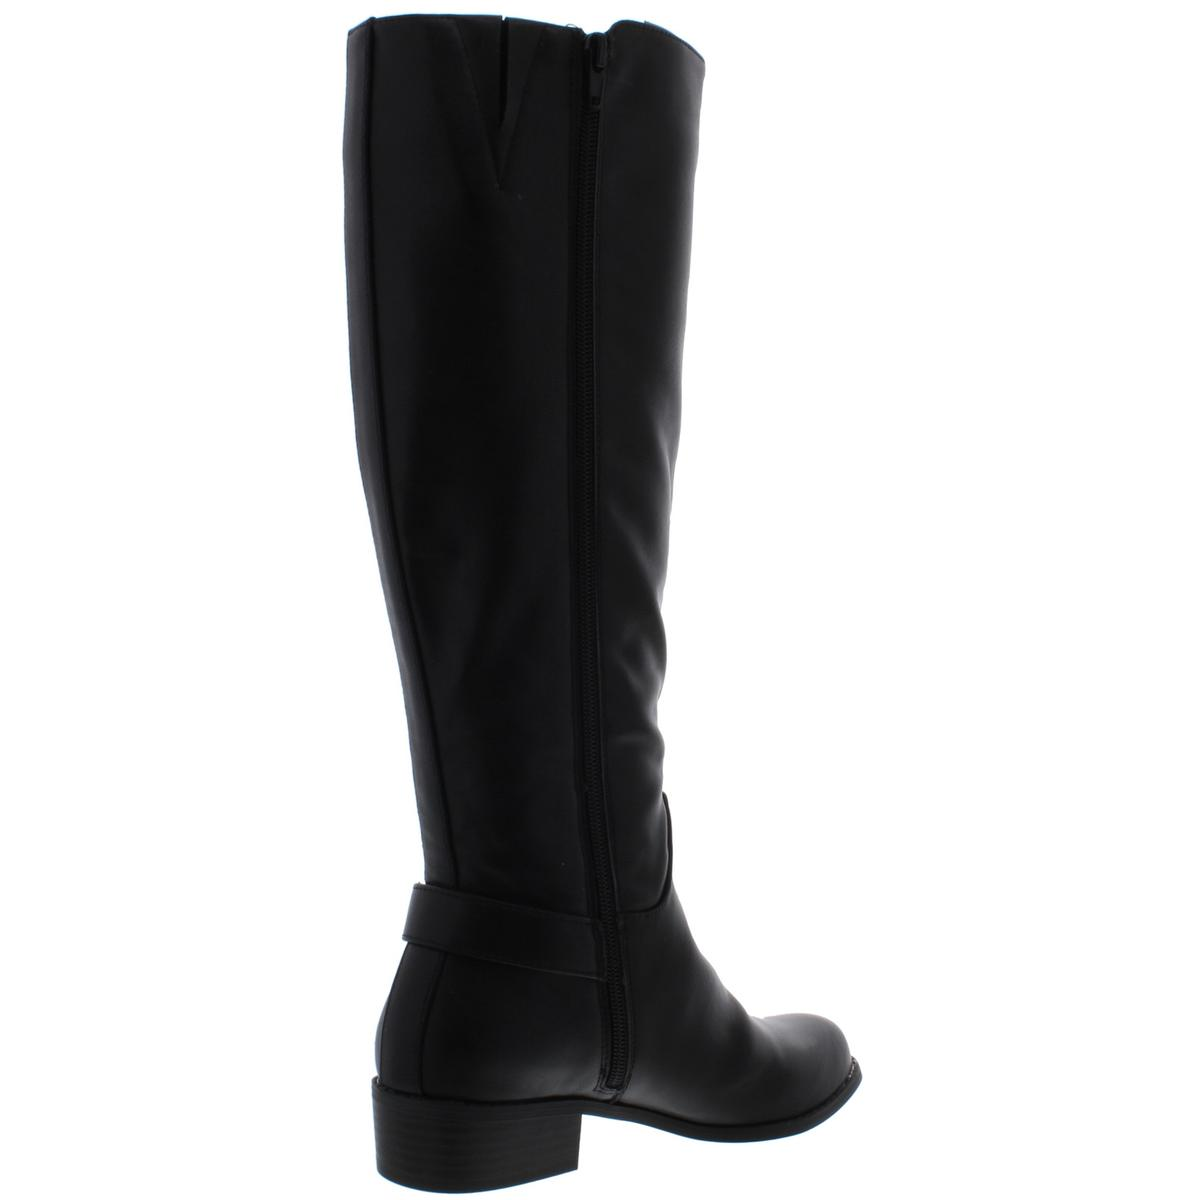 Alfani Womens Kallumm Wide Calf Leather Tall Riding Boots Shoes BHFO 4240